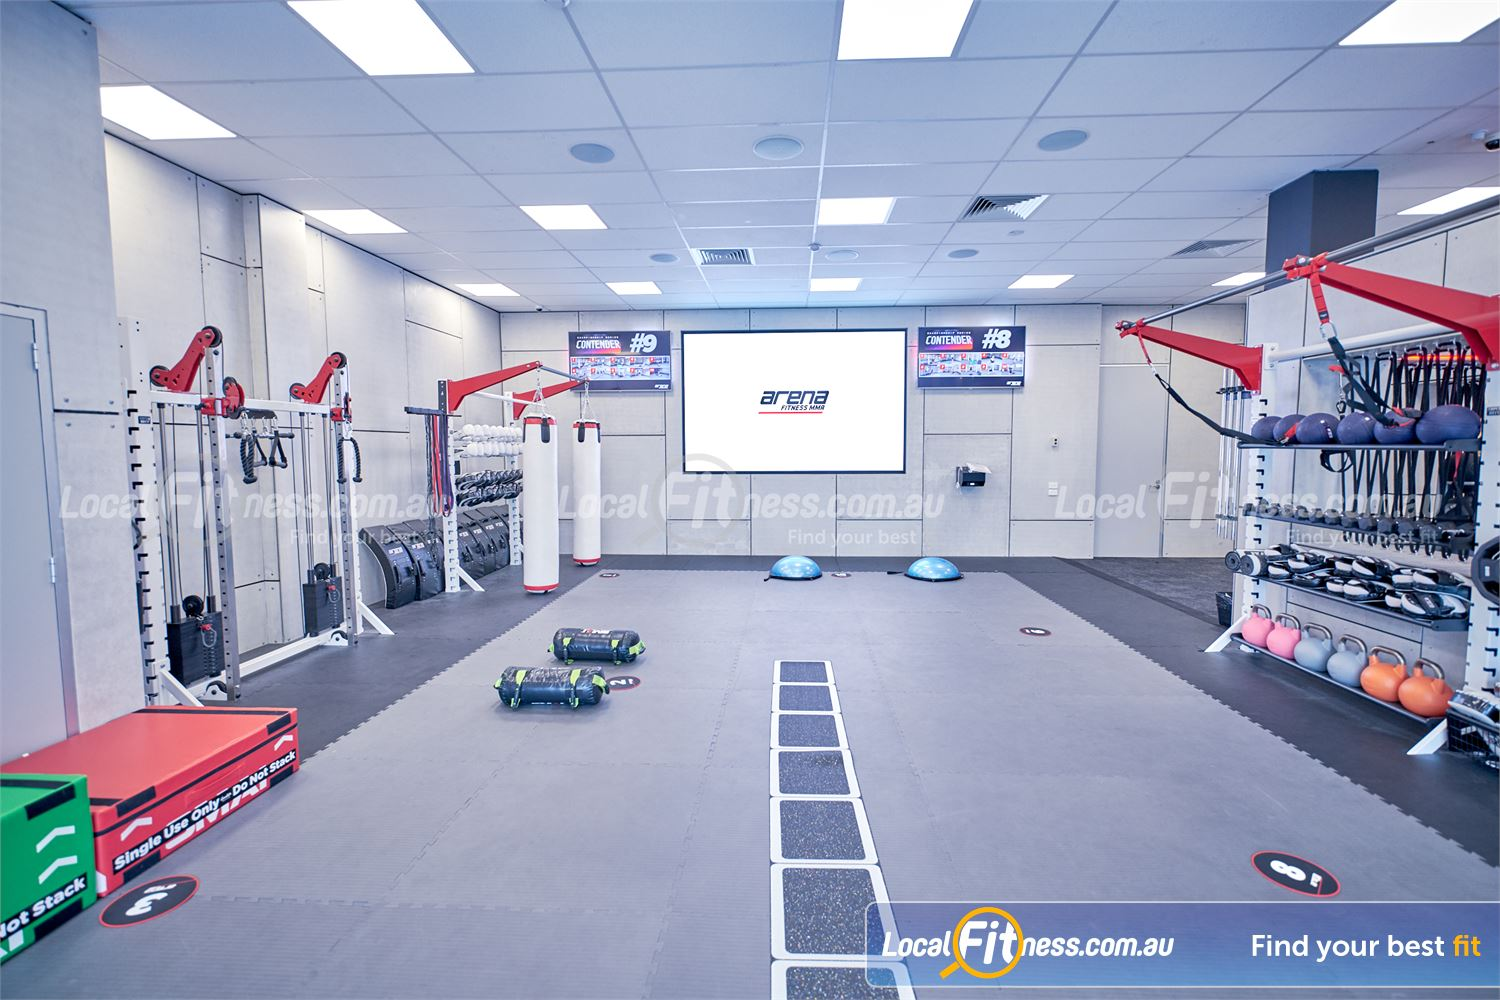 Goodlife Health Clubs Knox City Near Wantirna Welcome to Arena Fitness MMA Knox City at Goodlife Knox City.